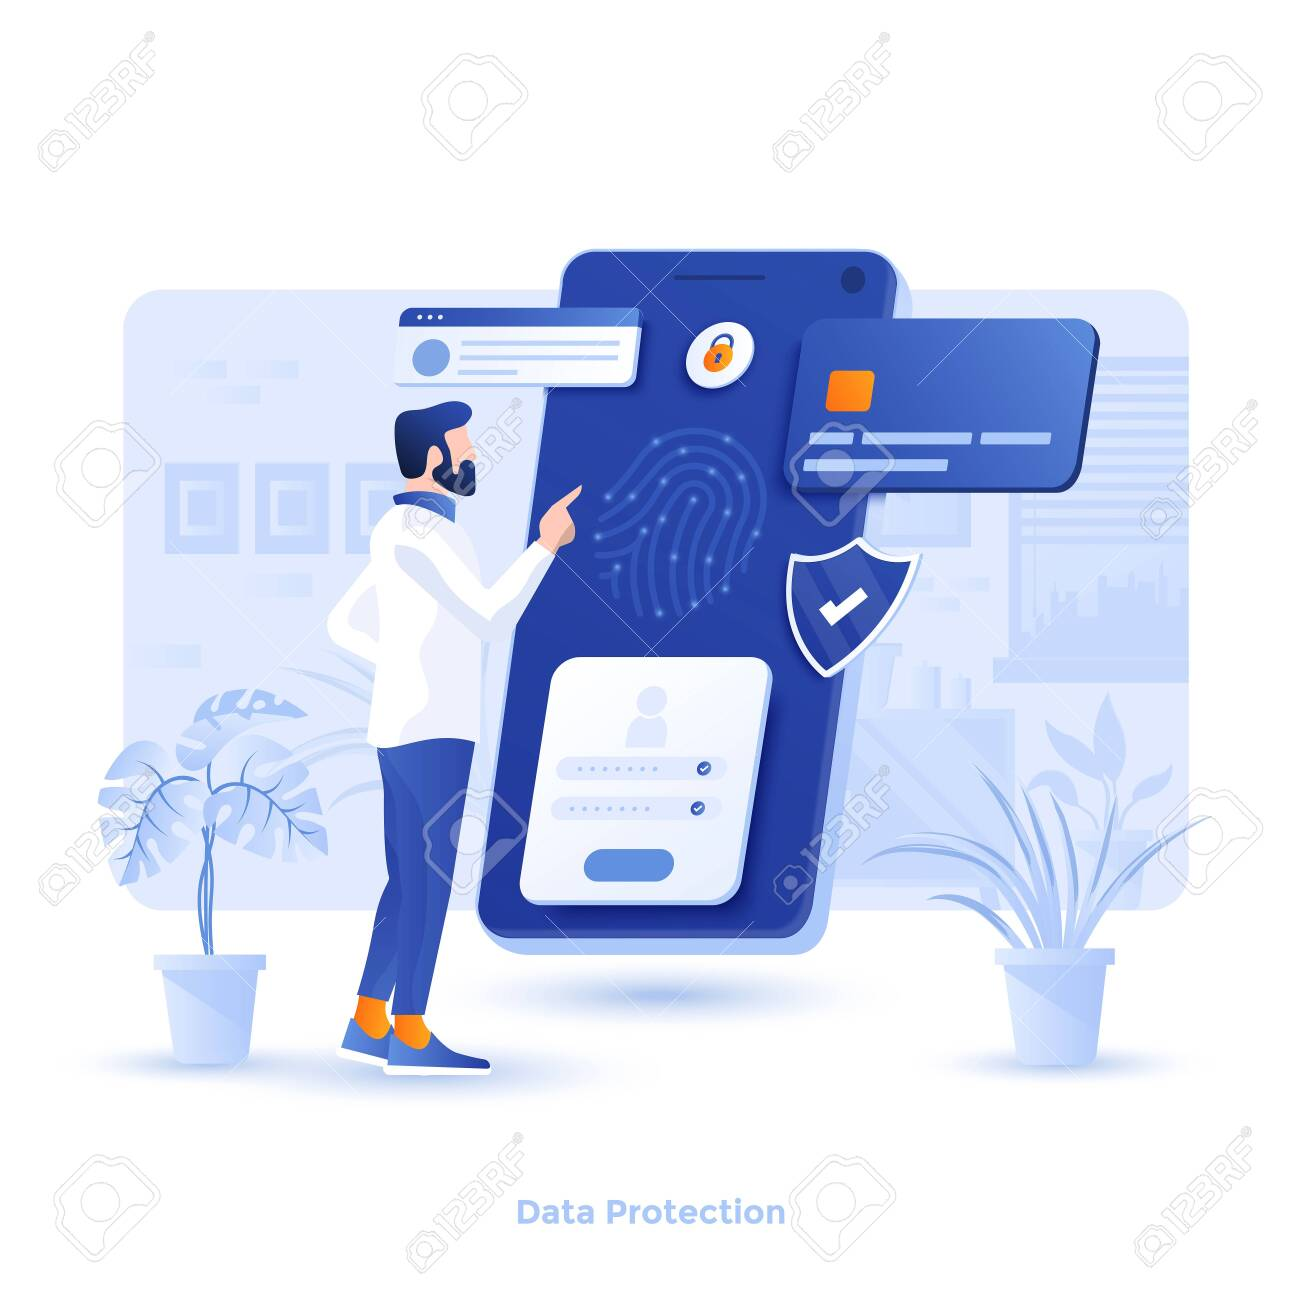 Modern flat design illustration of Data Protection. Can be used for website and mobile website or Landing page. Easy to edit and customize. Vector illustration - 134806537